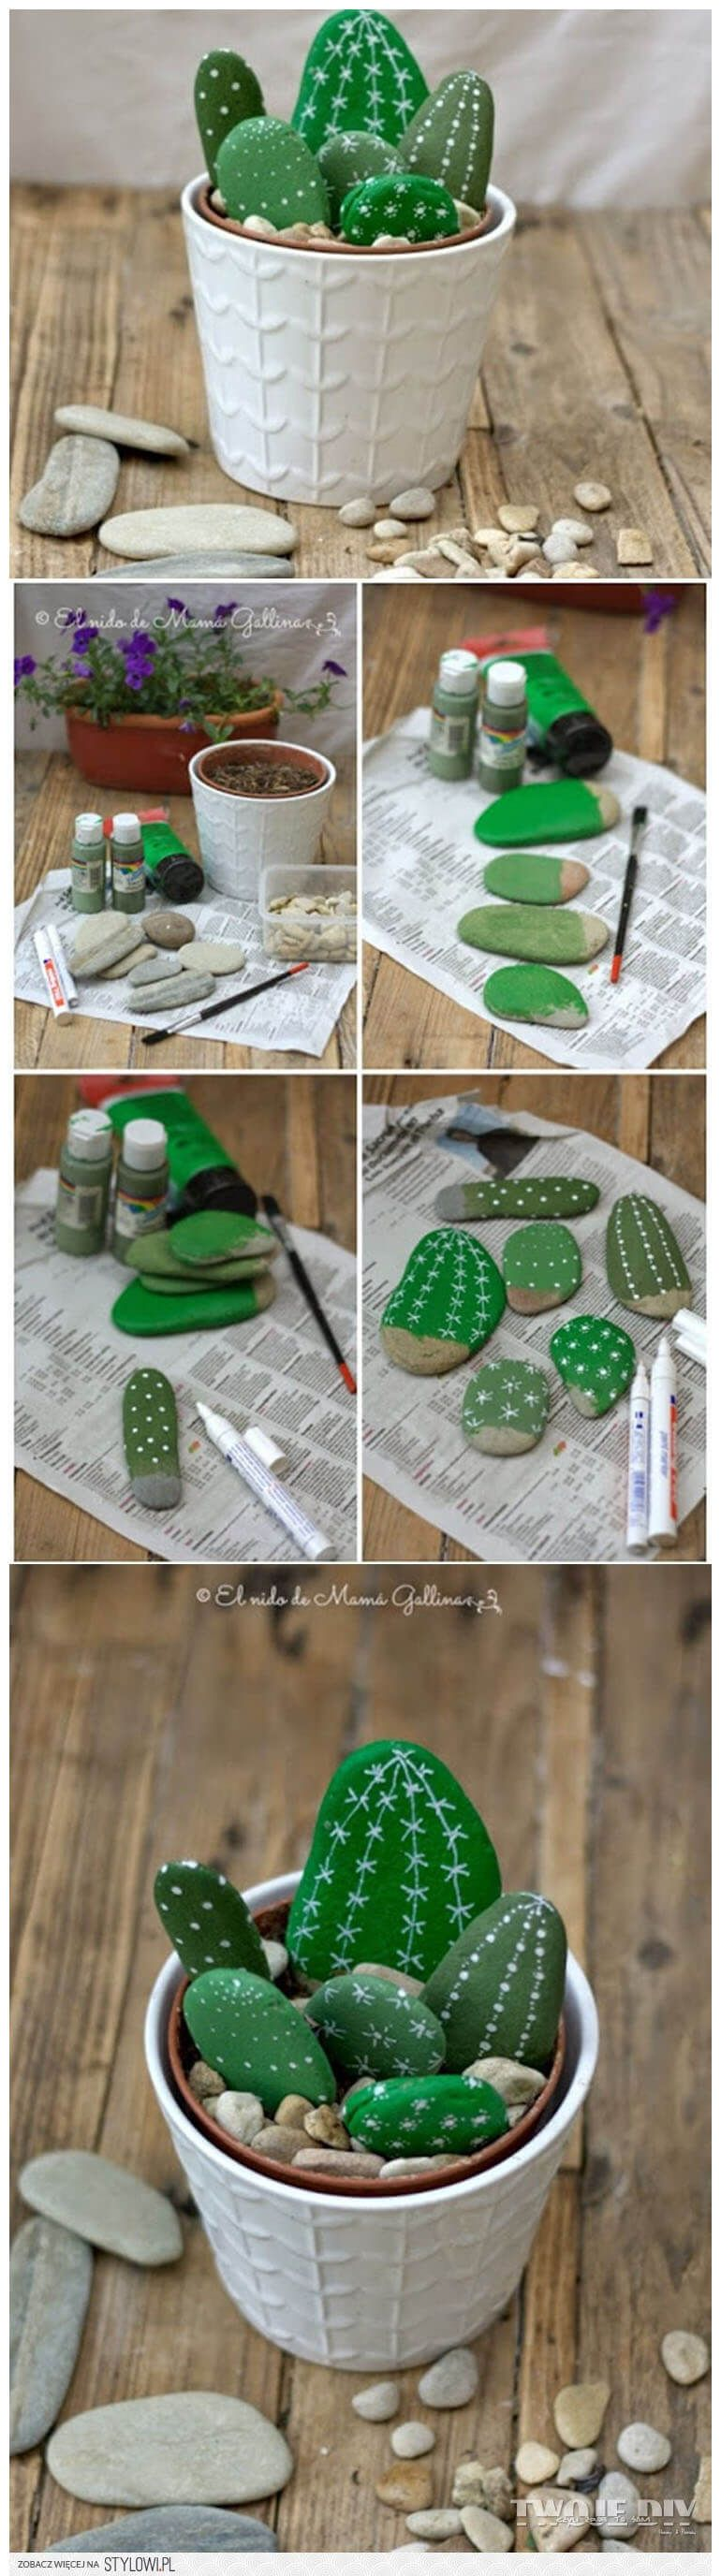 27 creative home improvement ideas with pebbles and river rocks that can be used for your stone collection - home decors